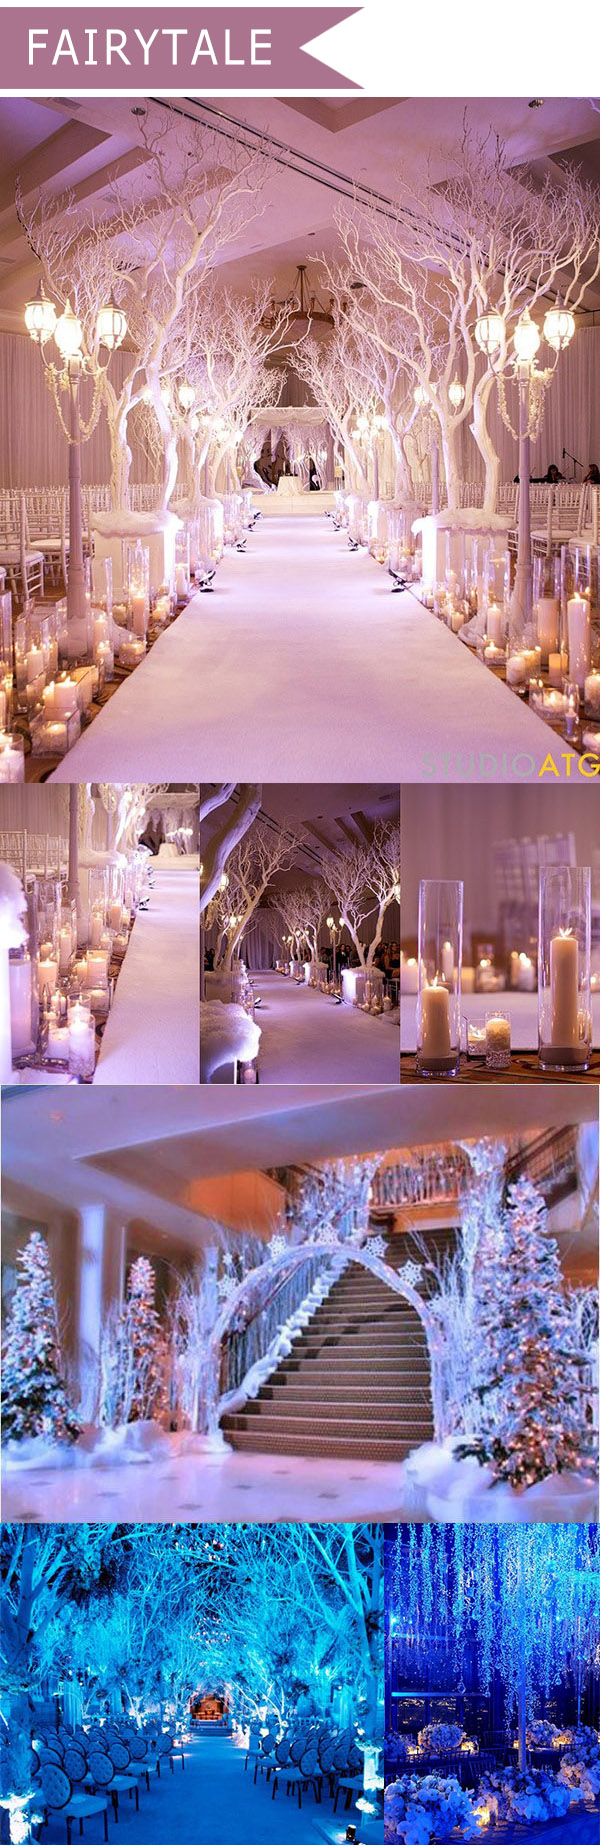 fairytale-themed-wedding-decoration-ideas-for-2016-trends